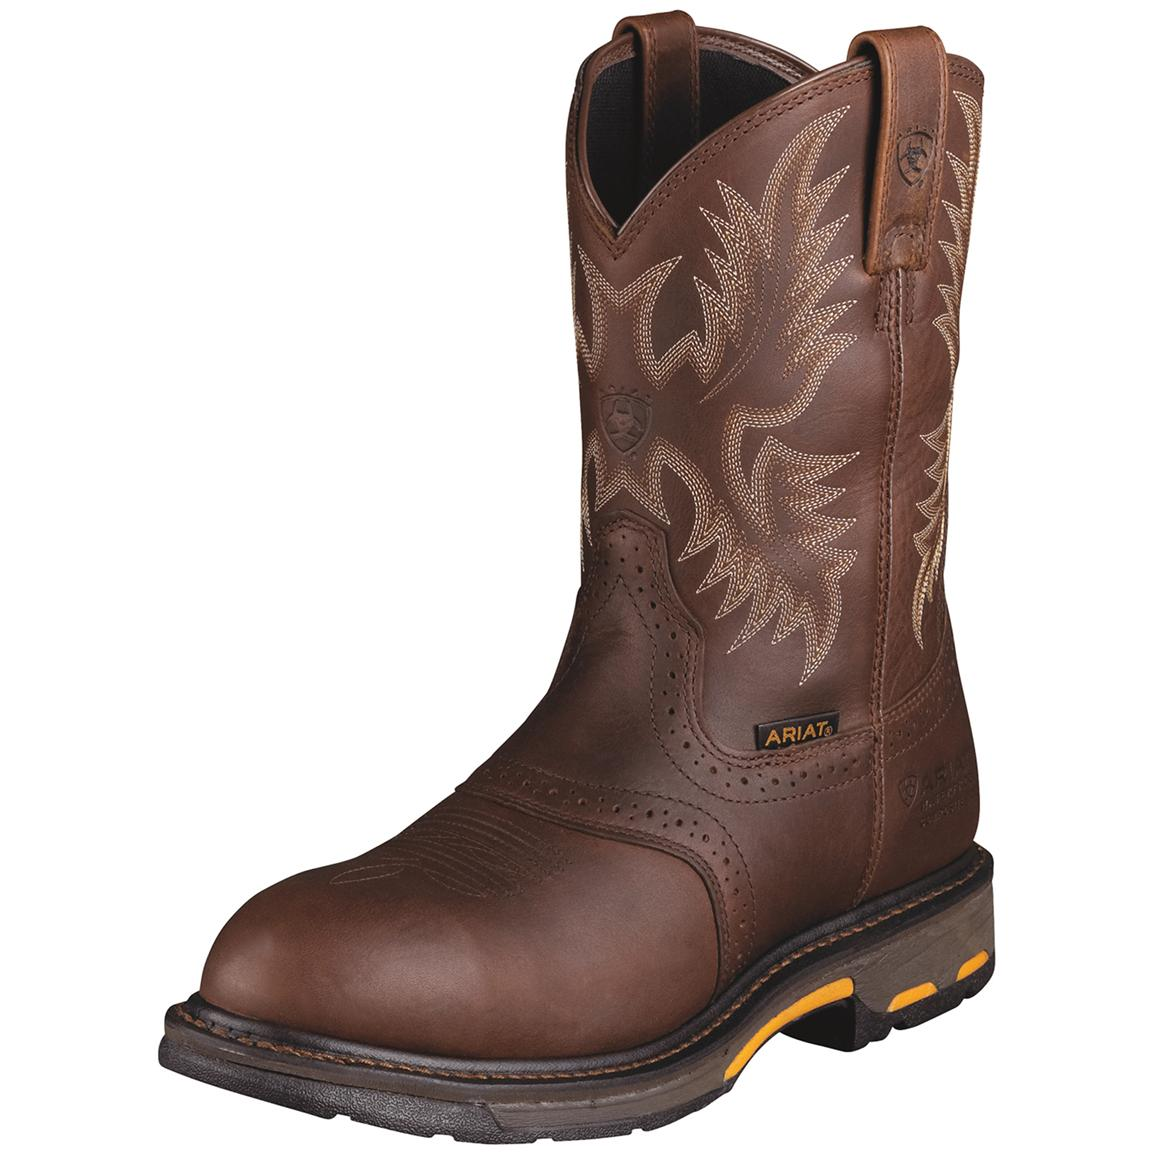 Ariat Men's WorkHog H2O Waterproof Composite Toe Western Work Boots